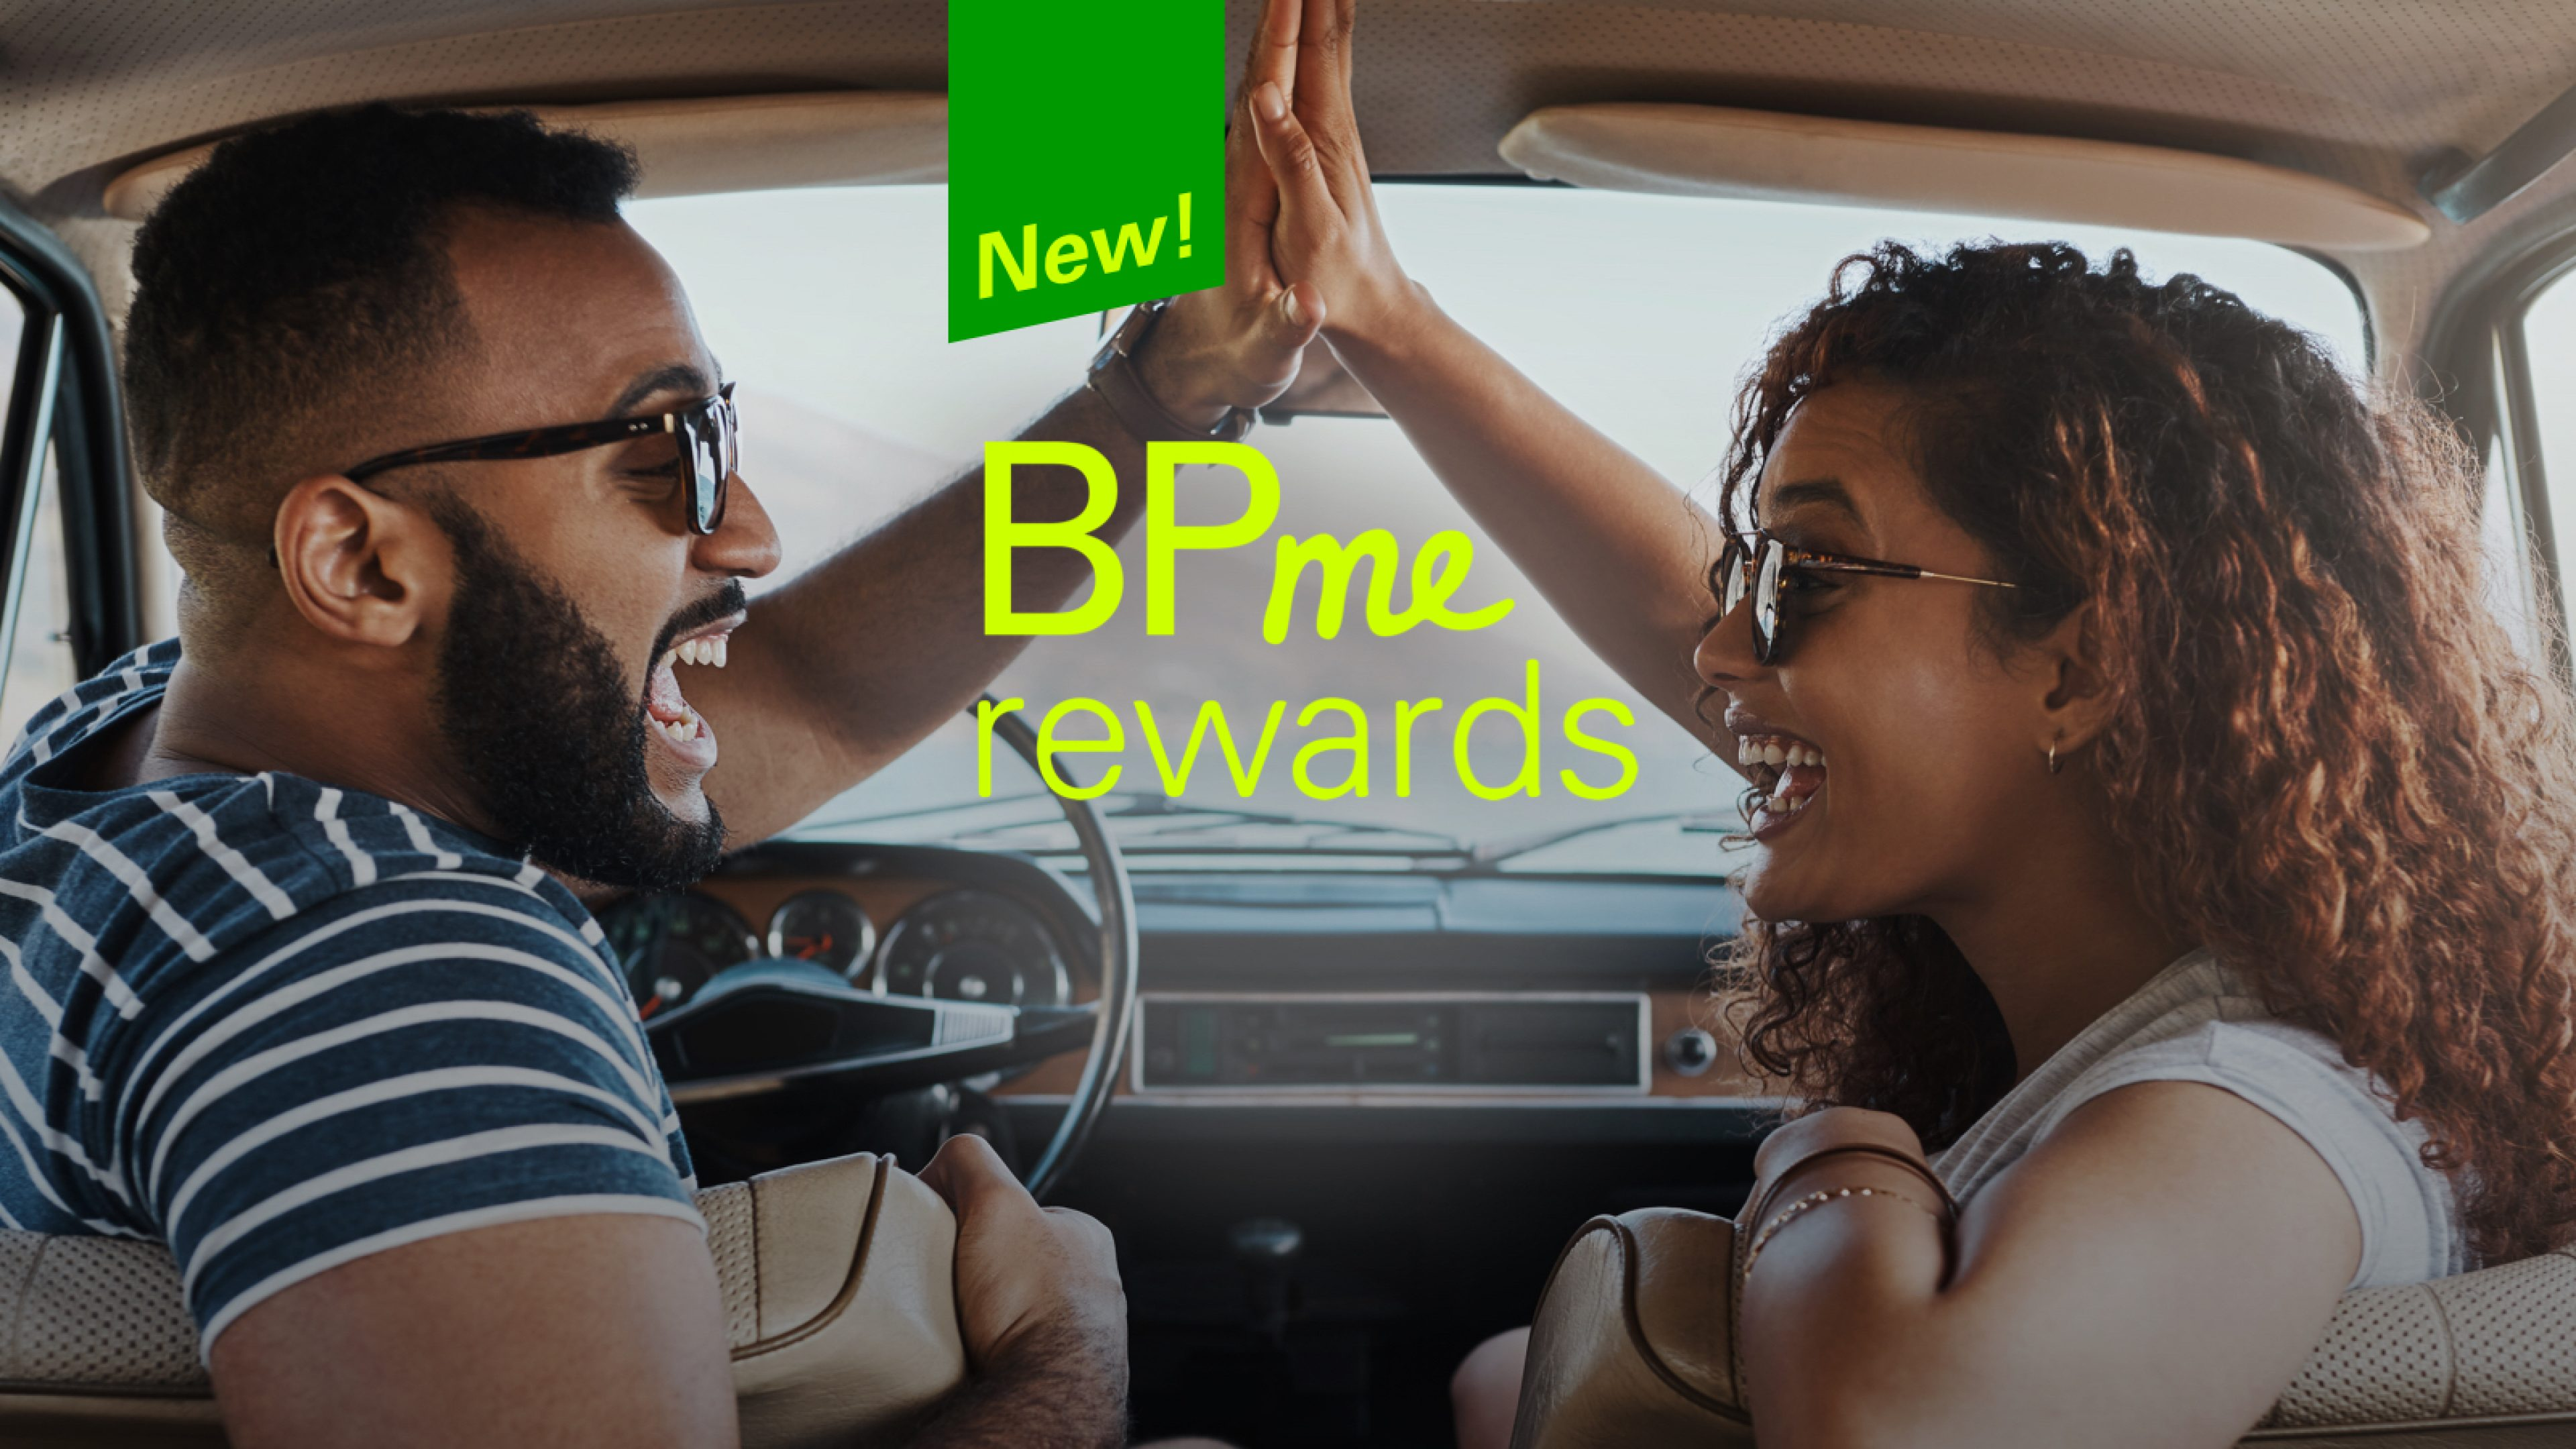 Couple high-fiving in a car about BPme rewards